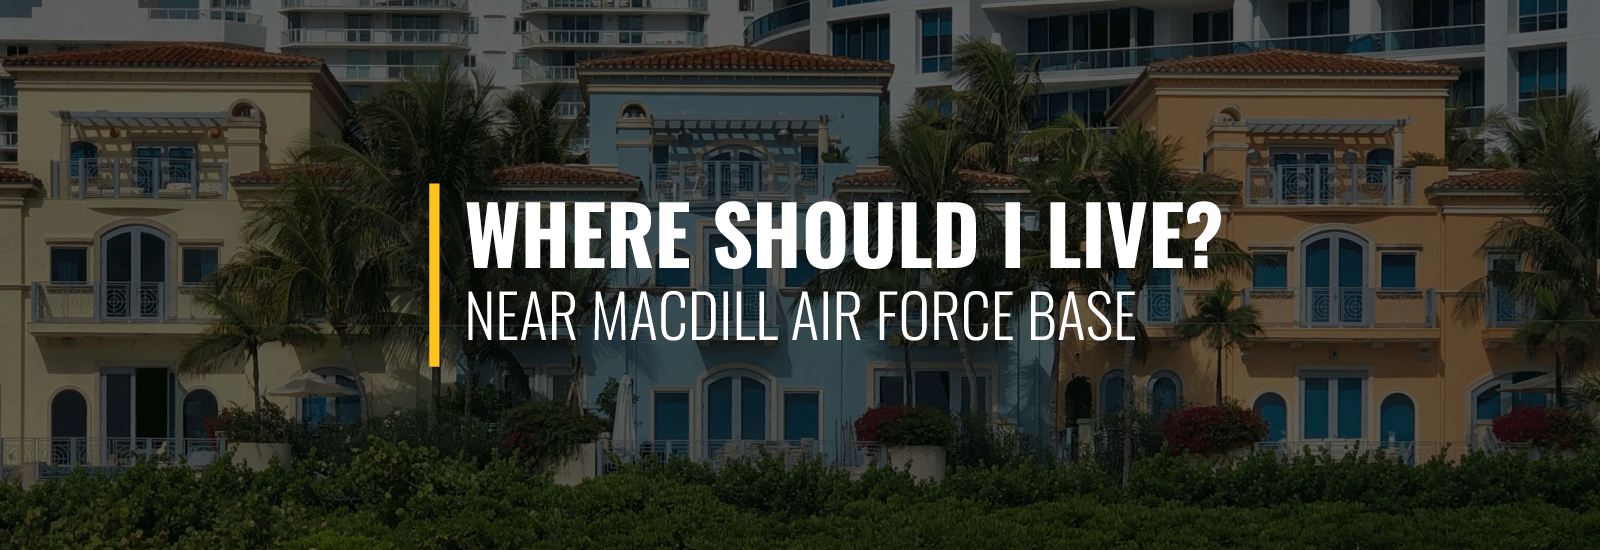 Where Should I Live Near MacDill Air Force Base?